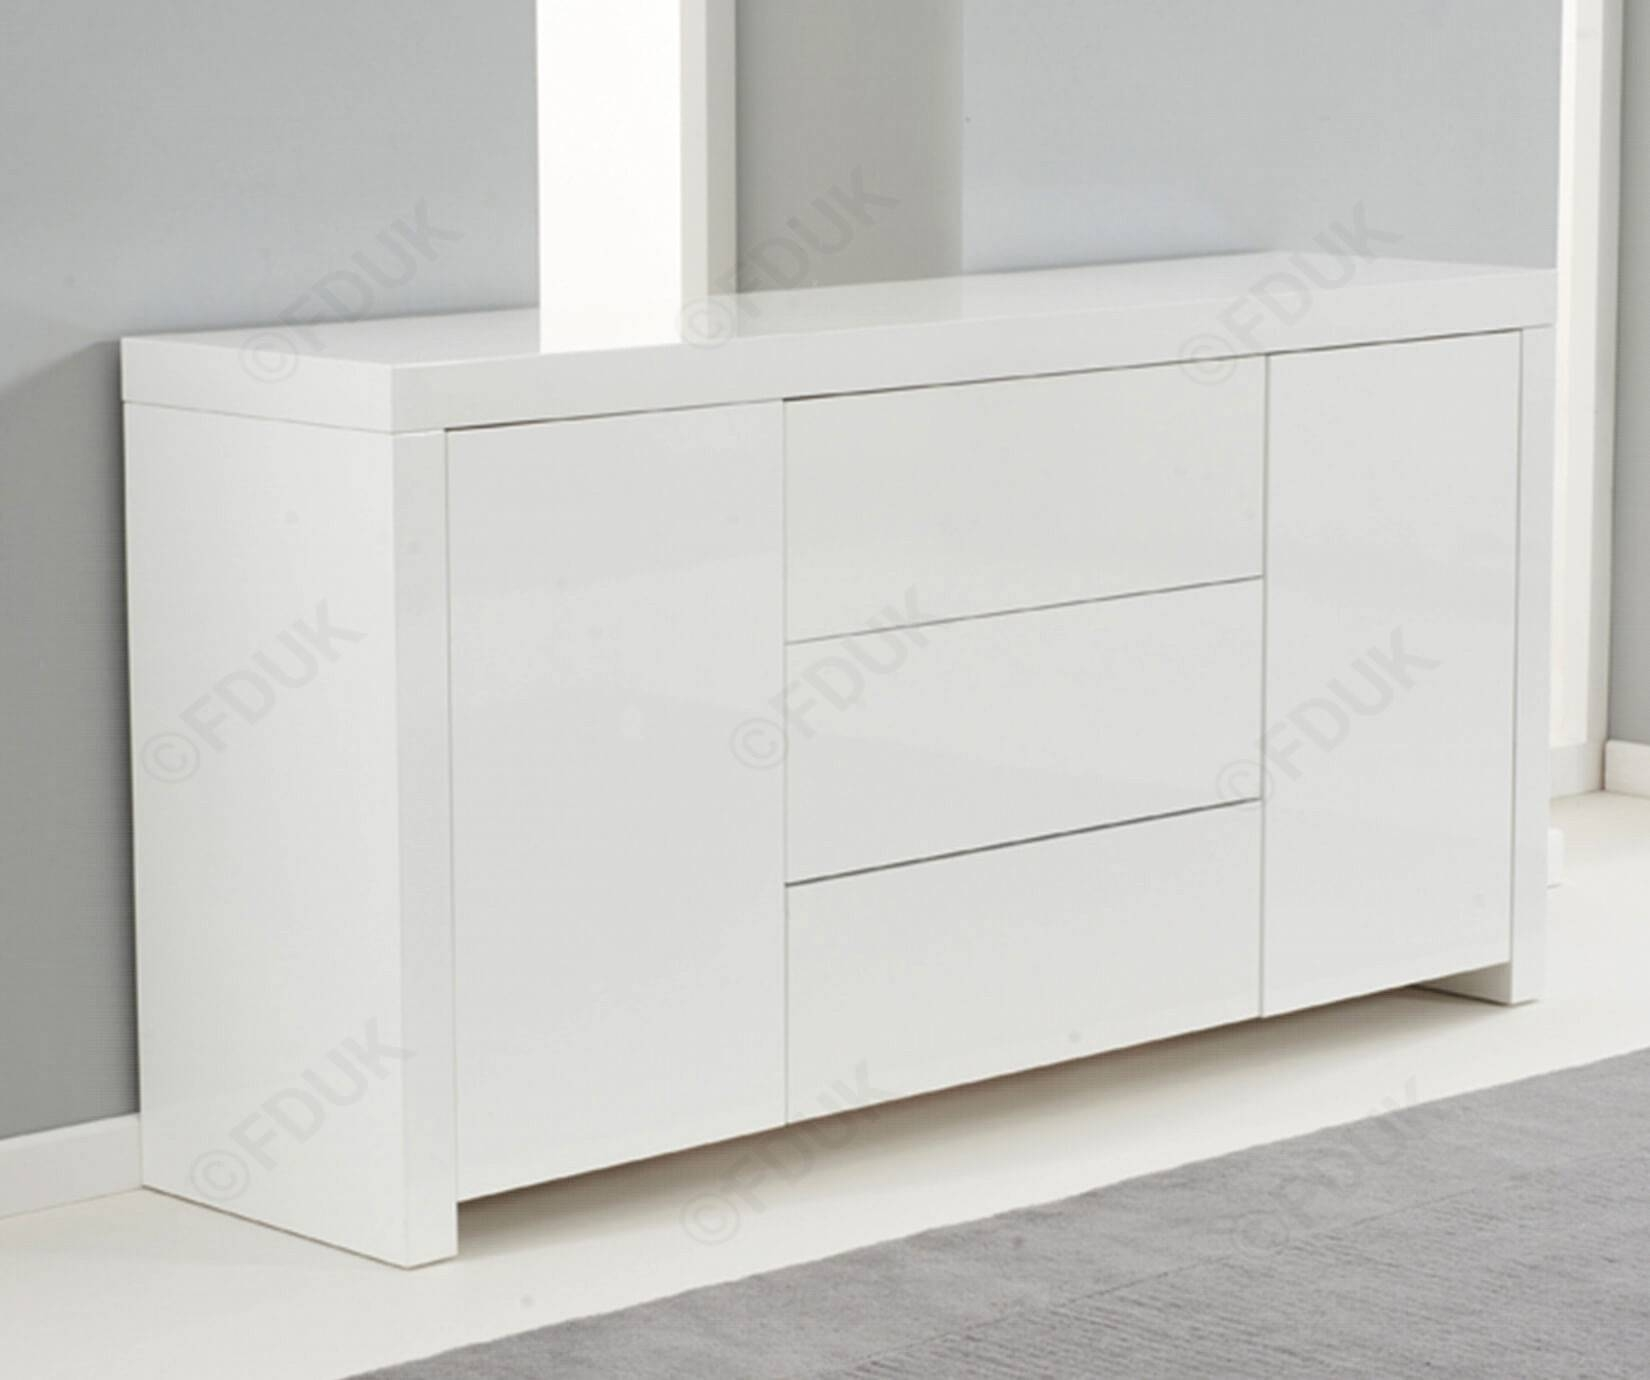 Popular Photo of Gloss White Sideboards